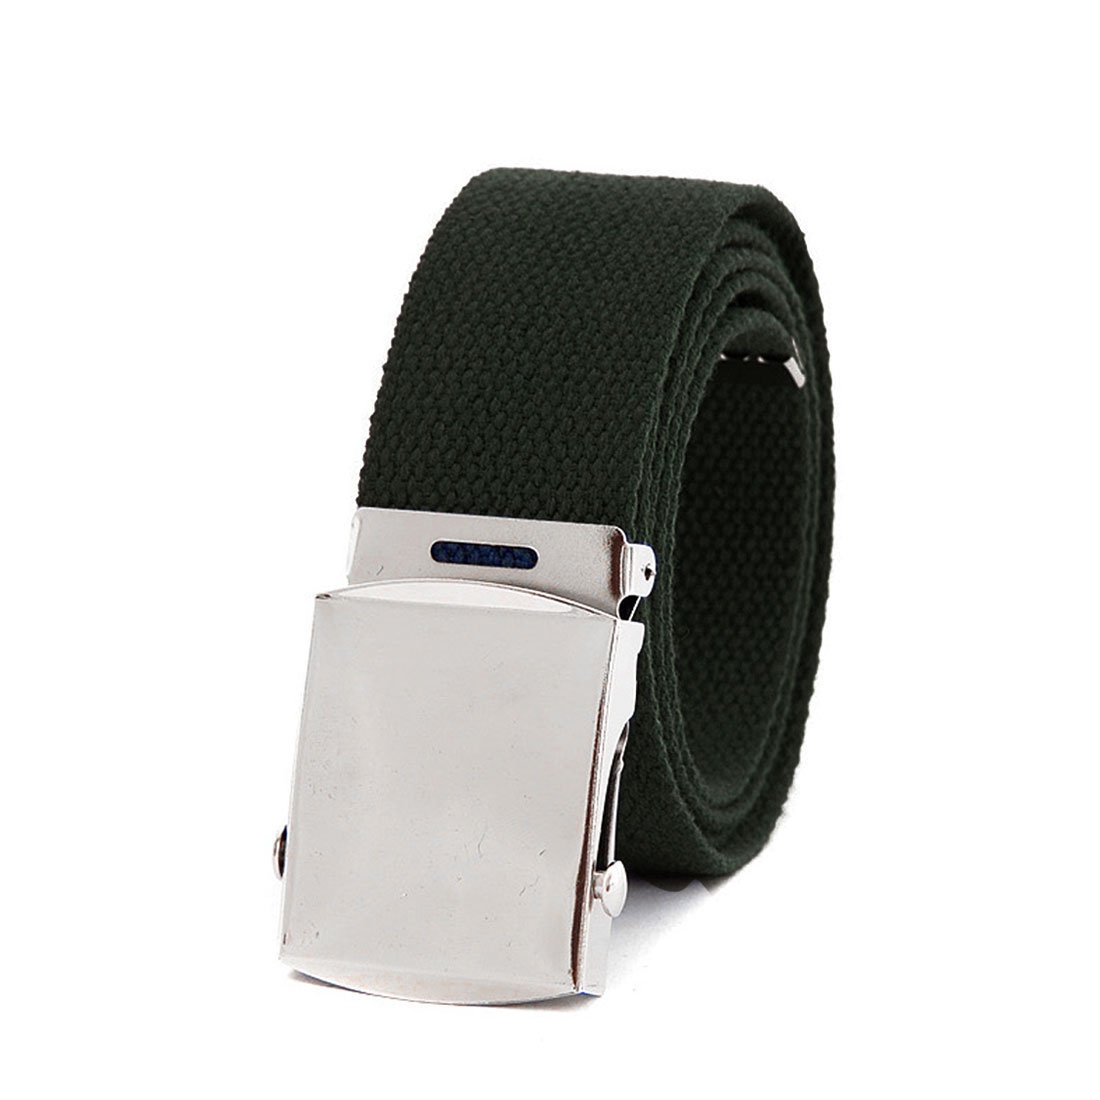 Unisex Olive Green Metal Accent Slide Buckle Solid Color Woven Waist Belt